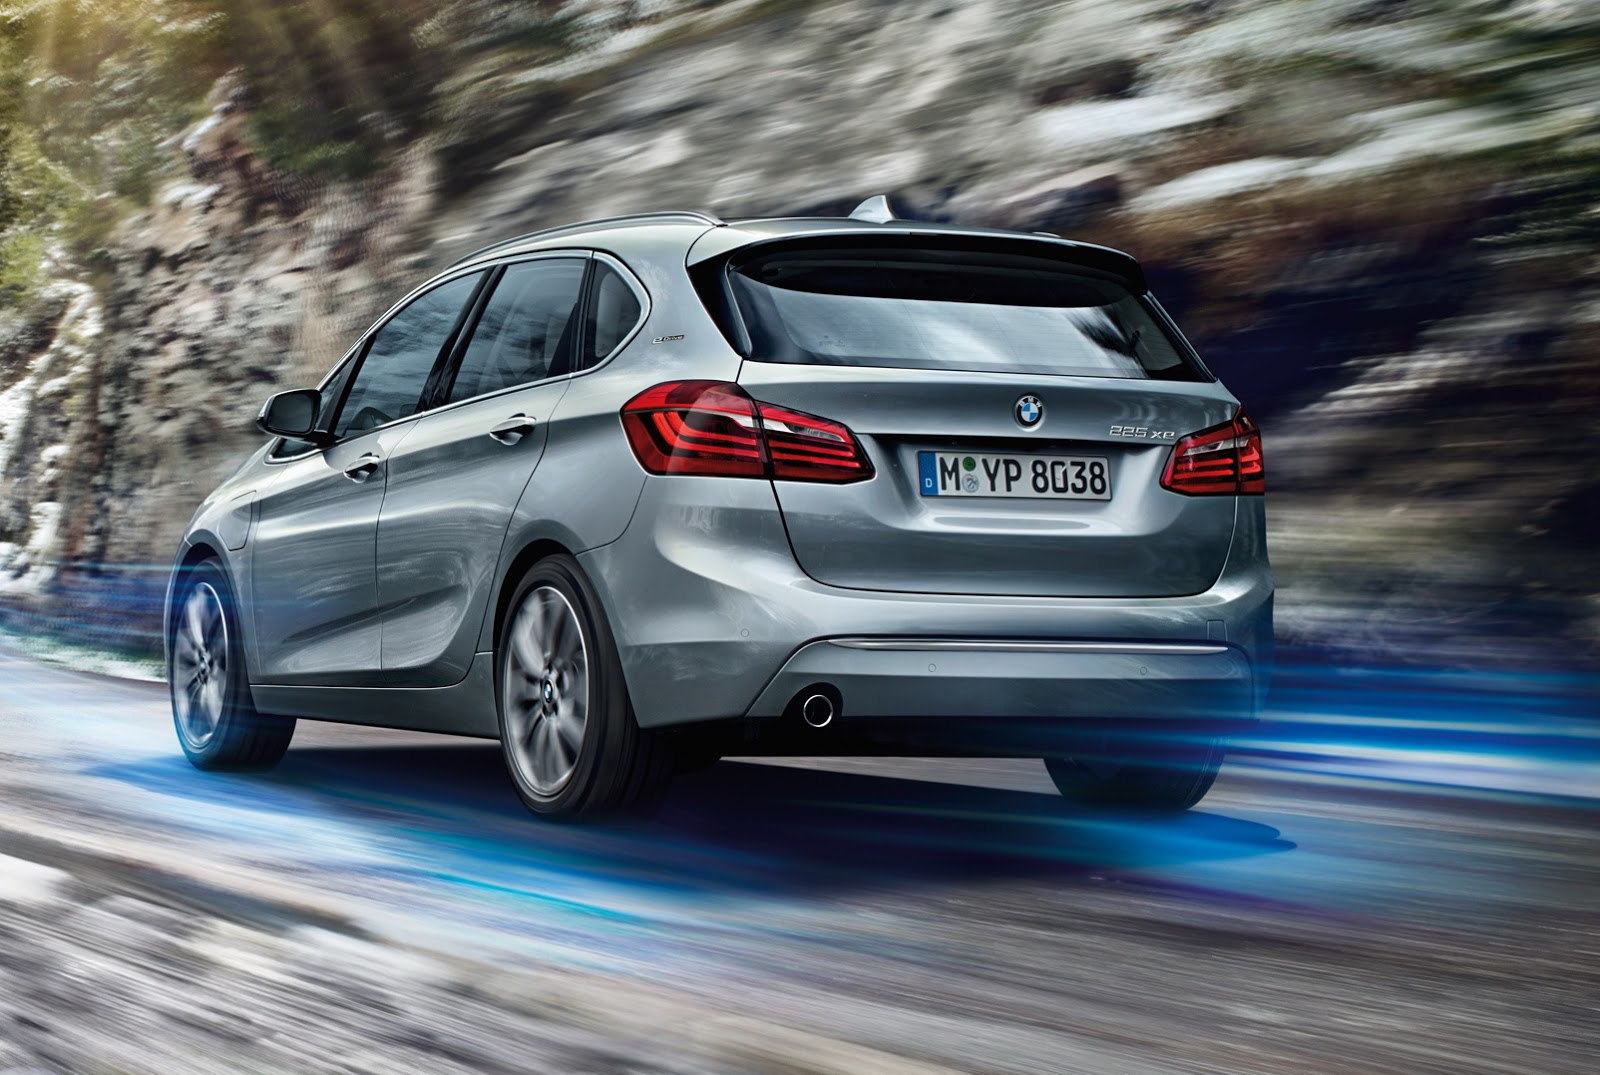 new bmw 225xe active tourer is an awd plug in hybrid minivan carscoops. Black Bedroom Furniture Sets. Home Design Ideas